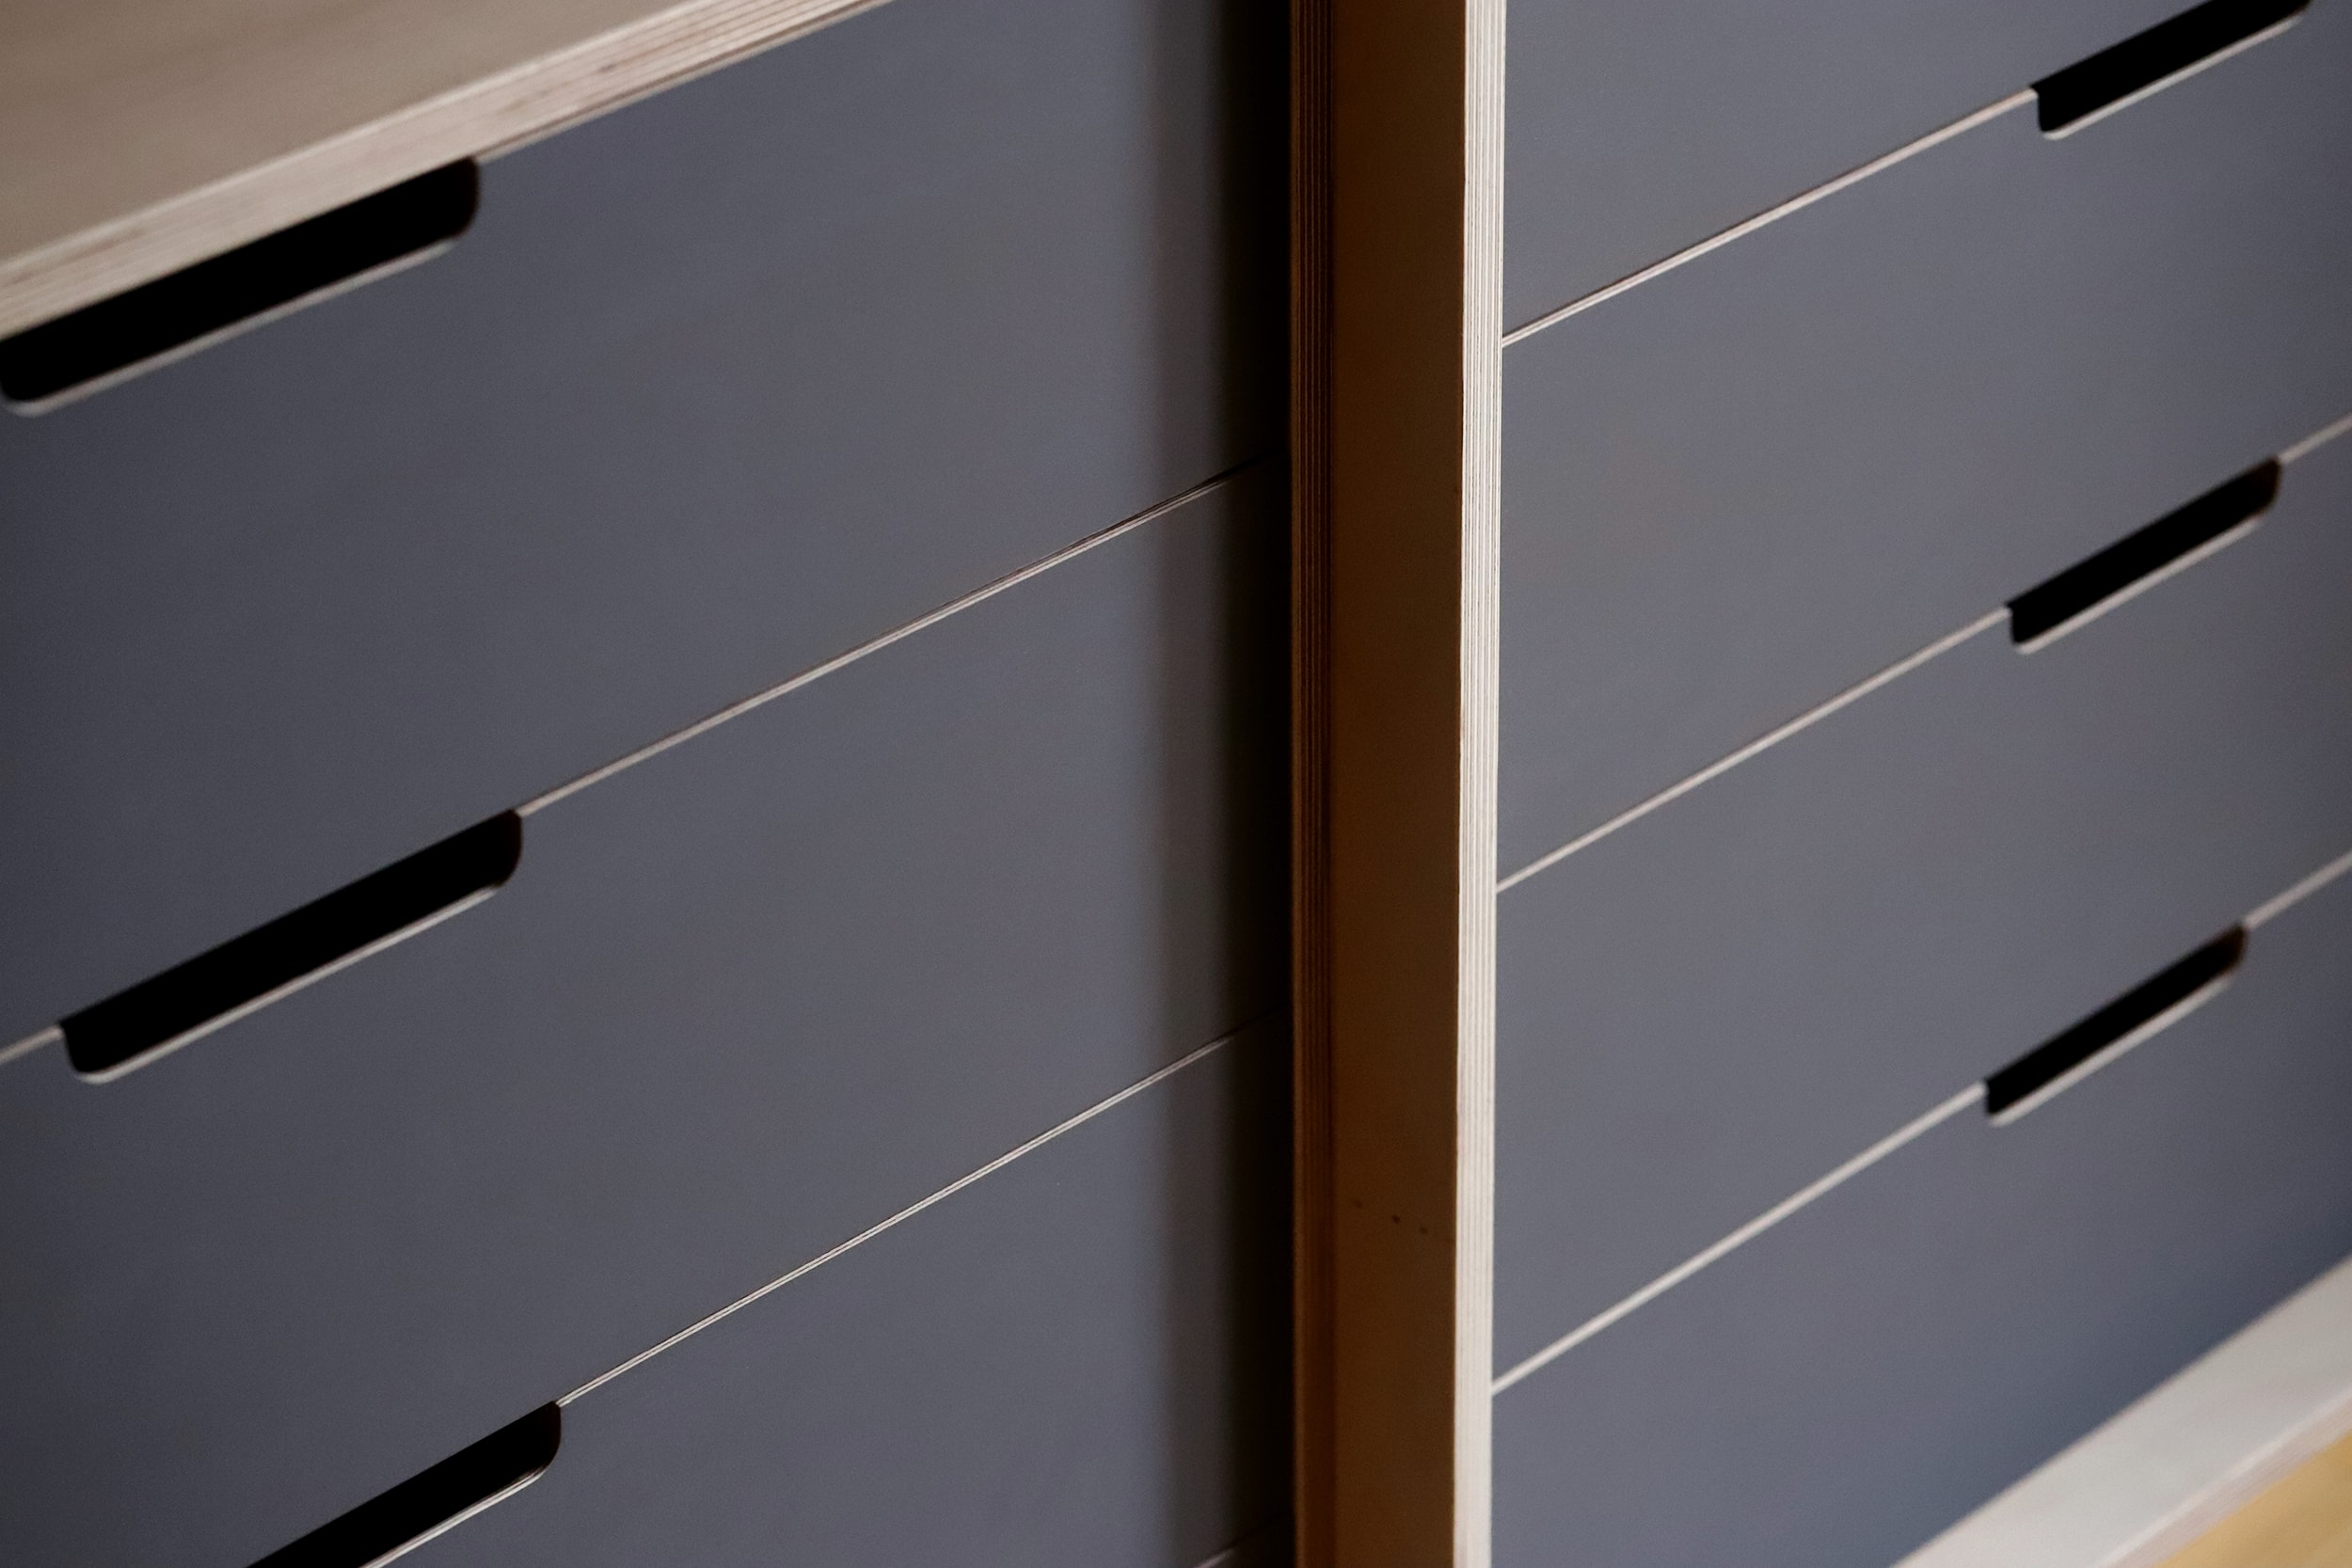 Drawer details from Samir's bespoke plywood by Lozi in his home in Bexley